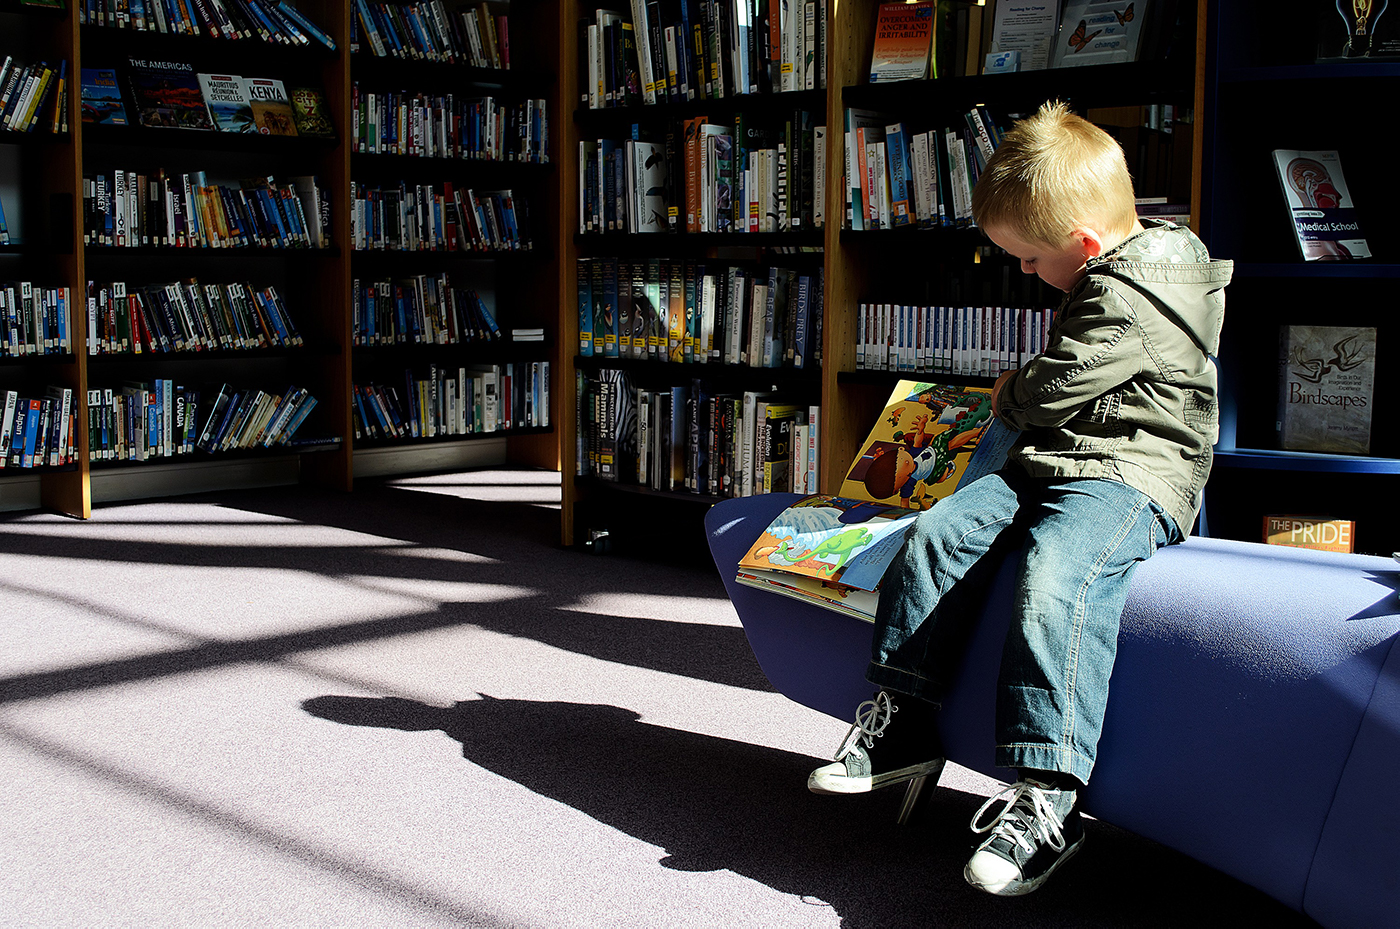 child_and_books_208362